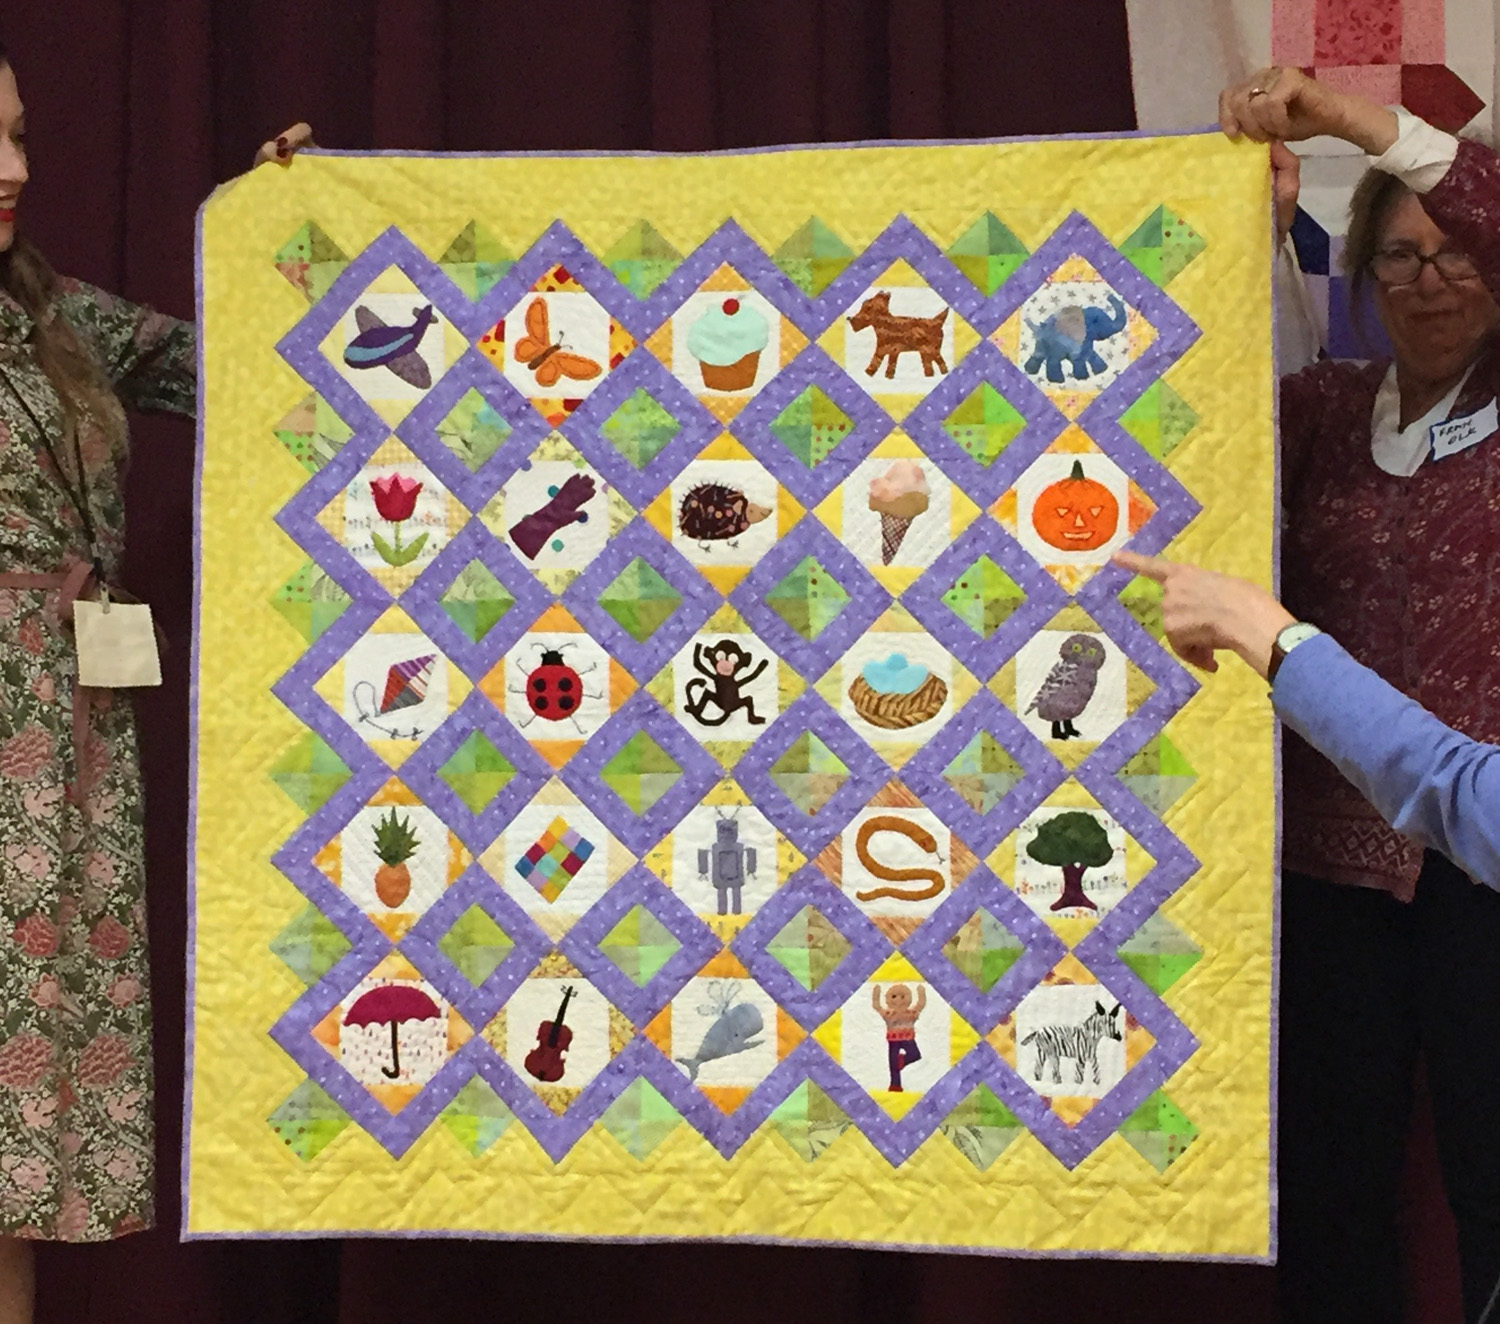 Monkey in the Middle quilt by Micki Segal